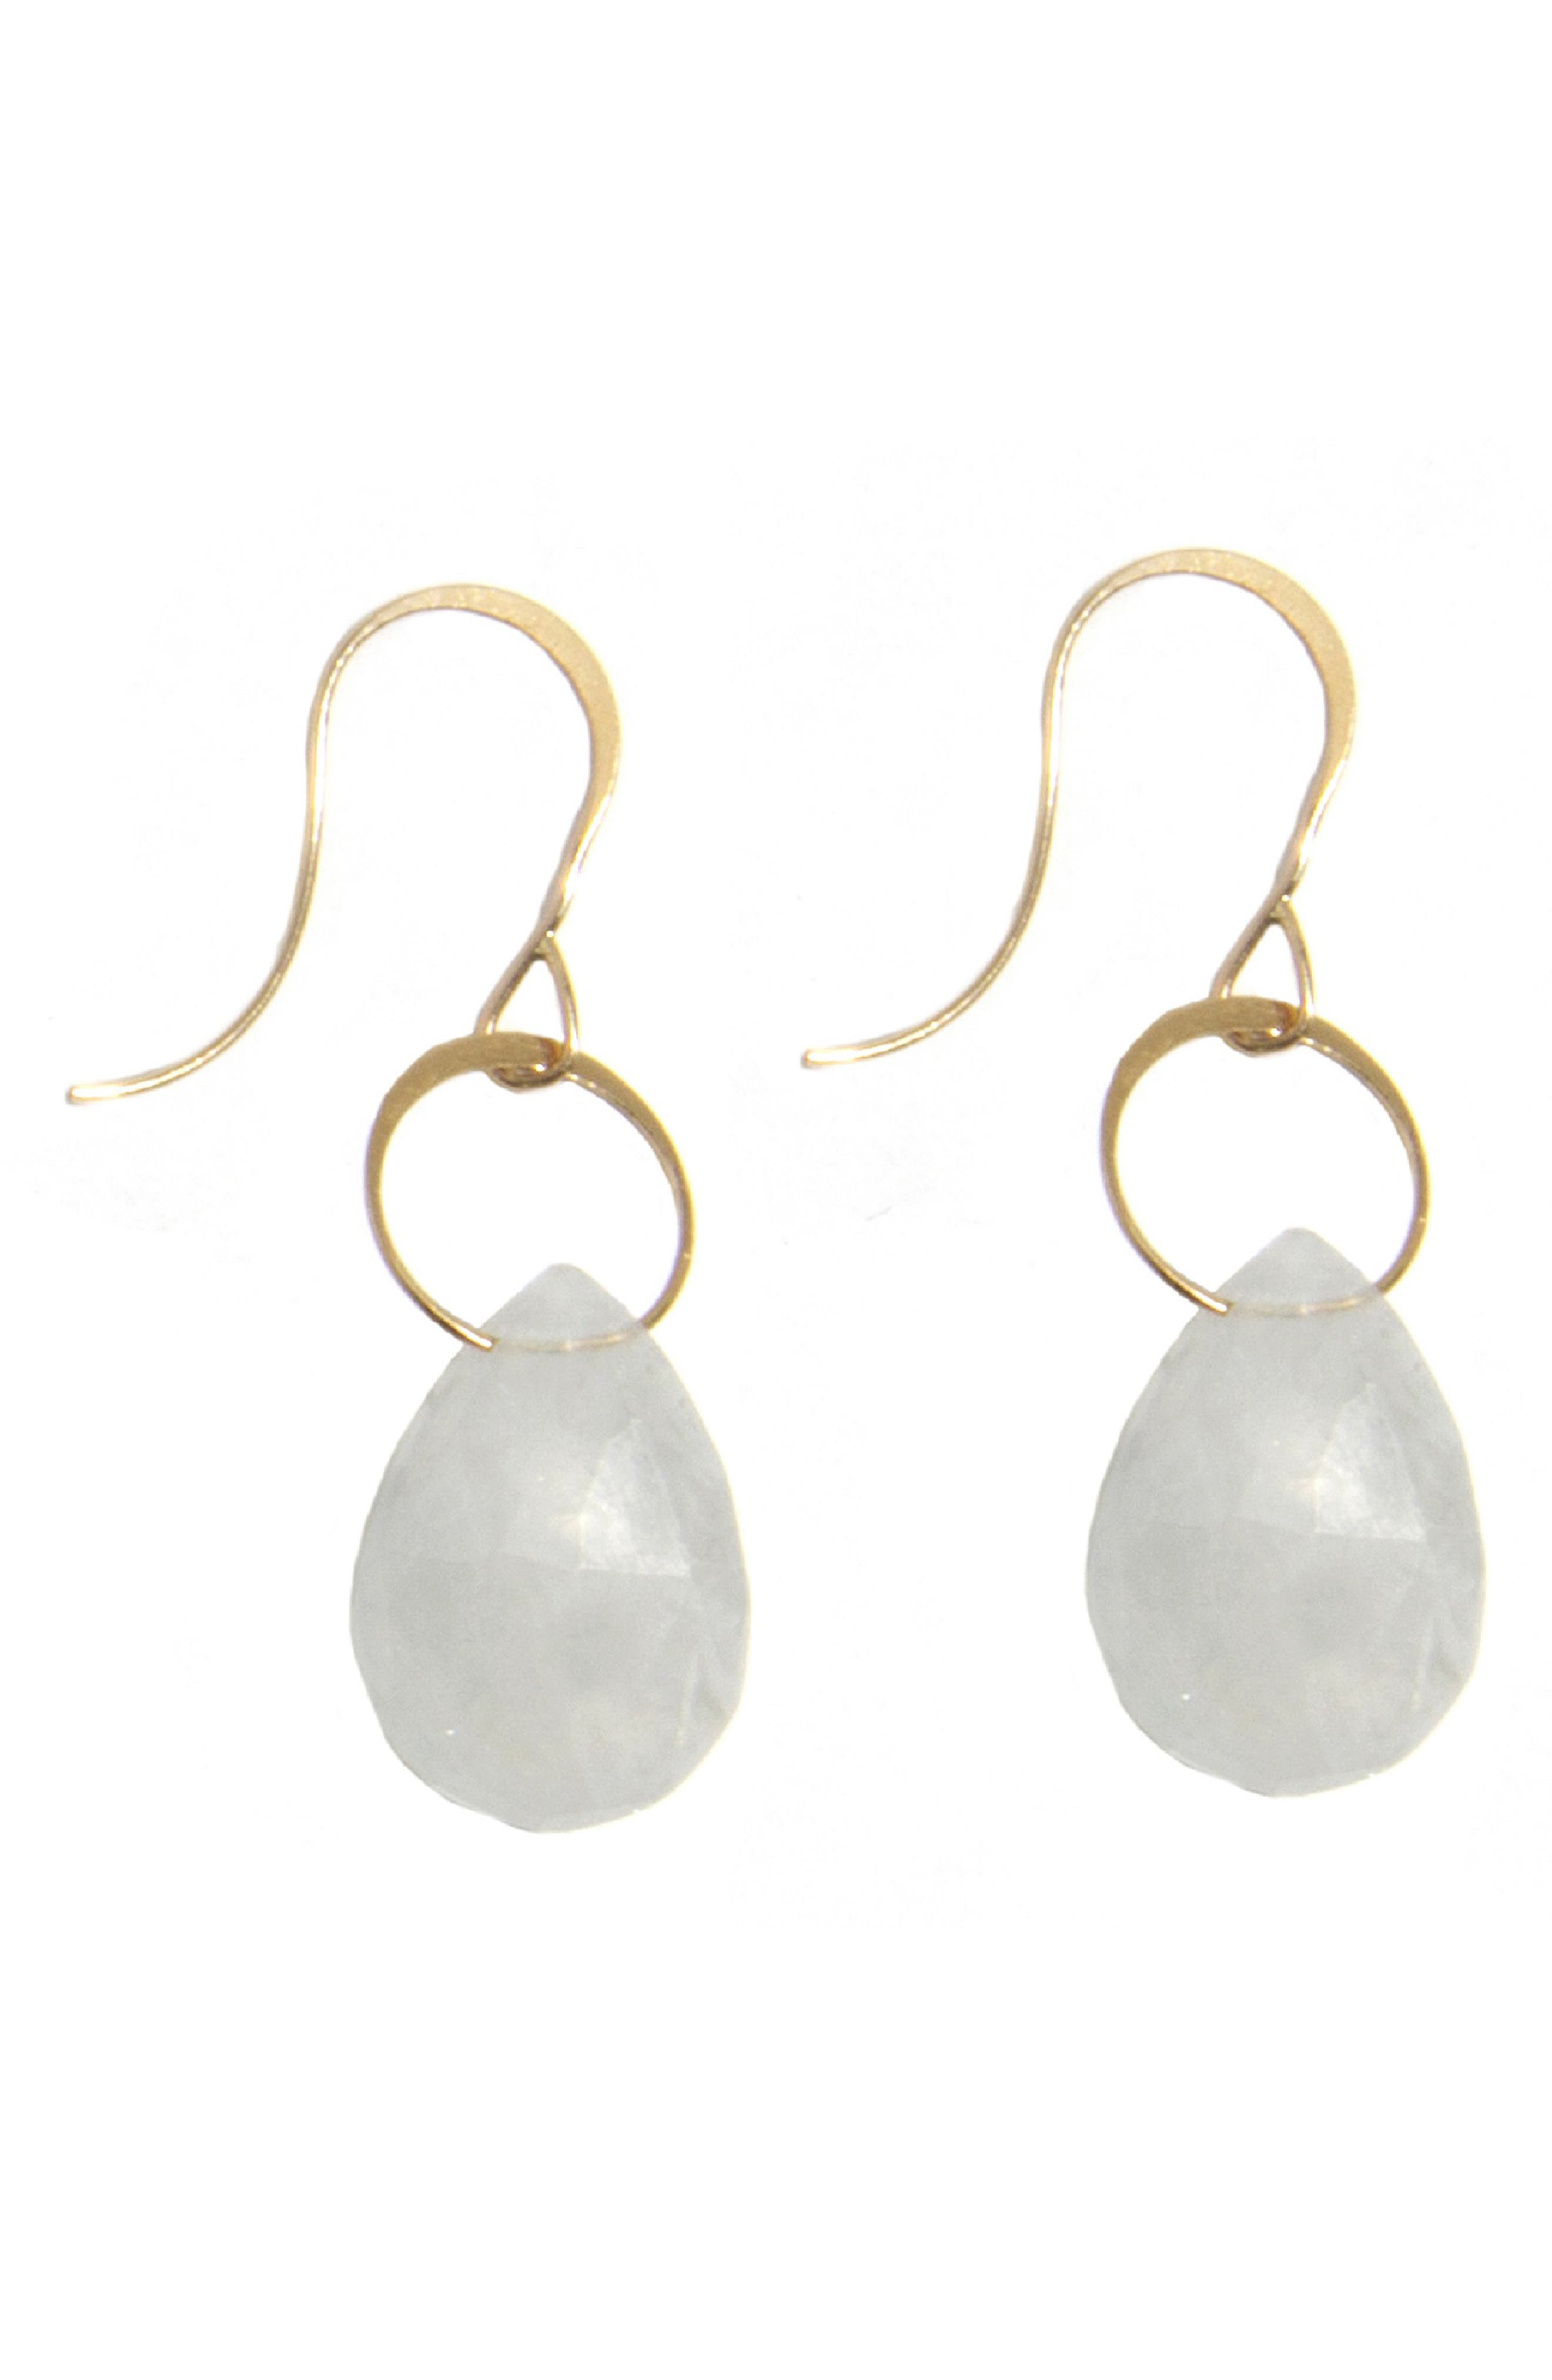 MELISSA JOY MANNING Rainbow Moonstone Drop Earrings in Yellow Gold